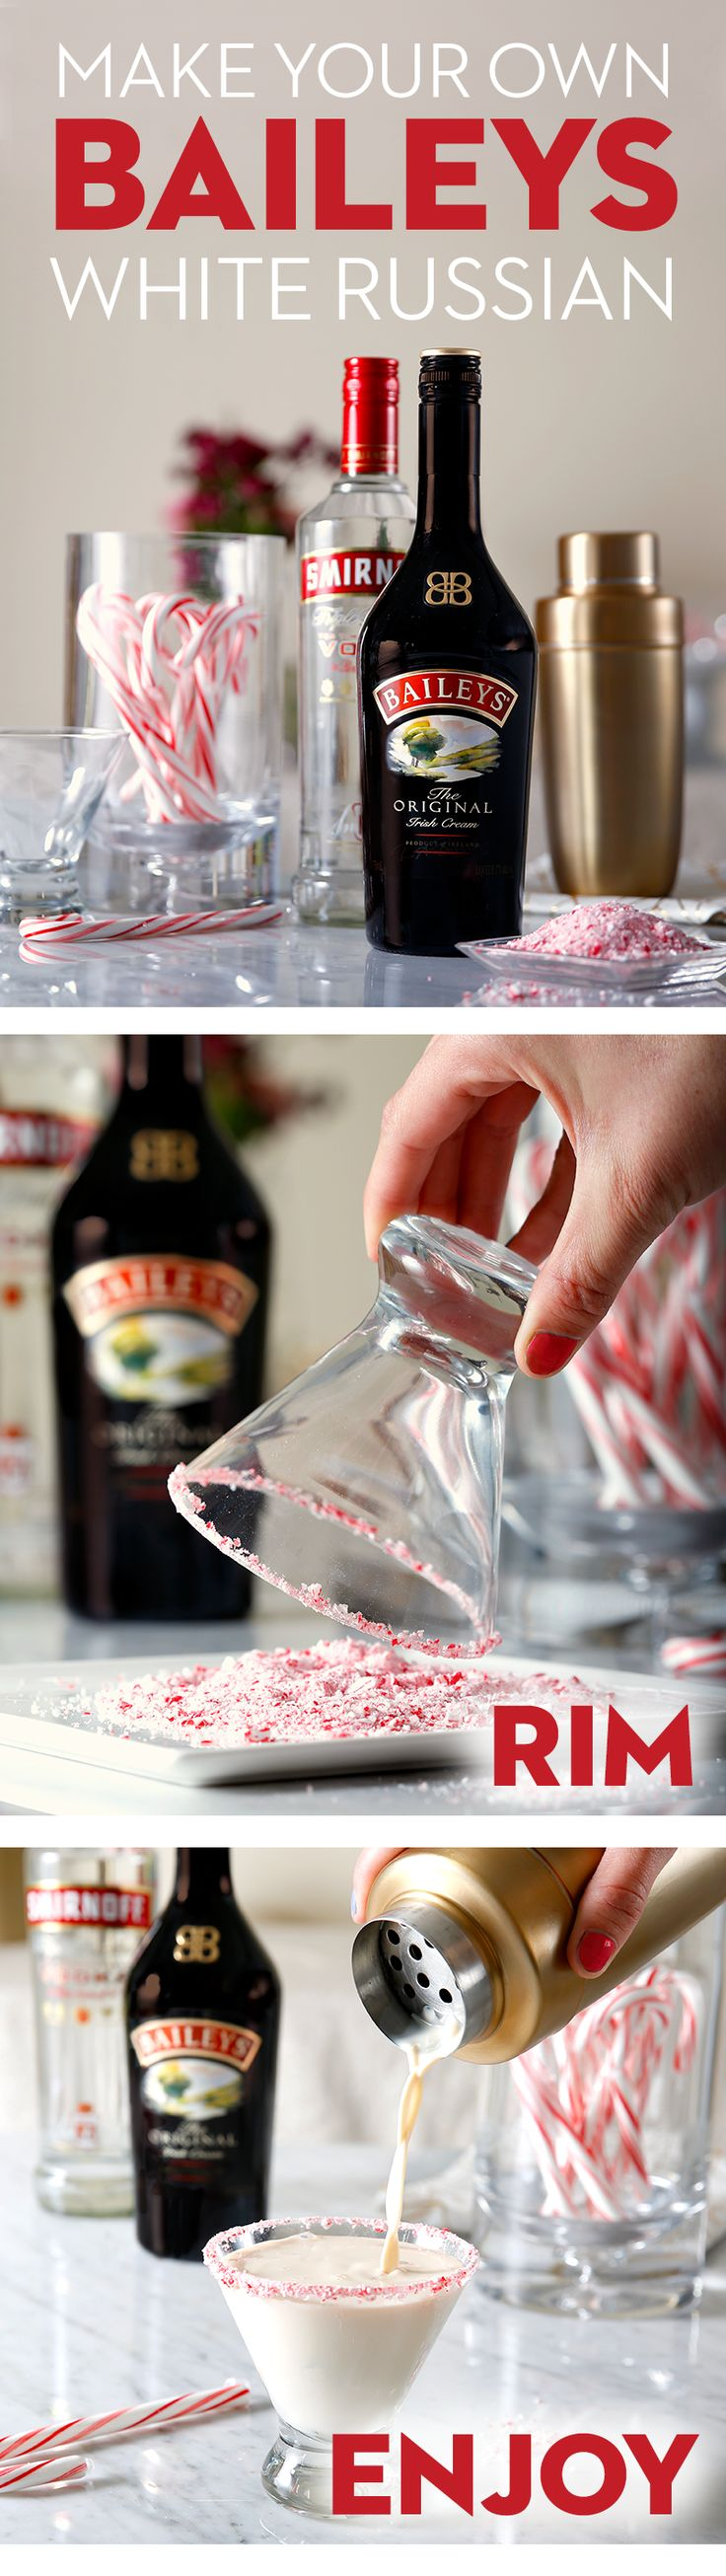 Bring your own flavor to this festive cocktail for this year's holiday party by trying a peppermint candy cane rim on this Baileys White Russian. The Rim: Place crushed candy canes on a small plate or saucer, wet the outside rim of the glass with water, and rotate the rim to coat with candy. The Cocktail (serves 1): Mix 1.5oz Baileys Irish Cream Liqueur, 0.5oz Smirnoff Vodka, 2oz milk, and ice into a shaker. Pour, and enjoy!